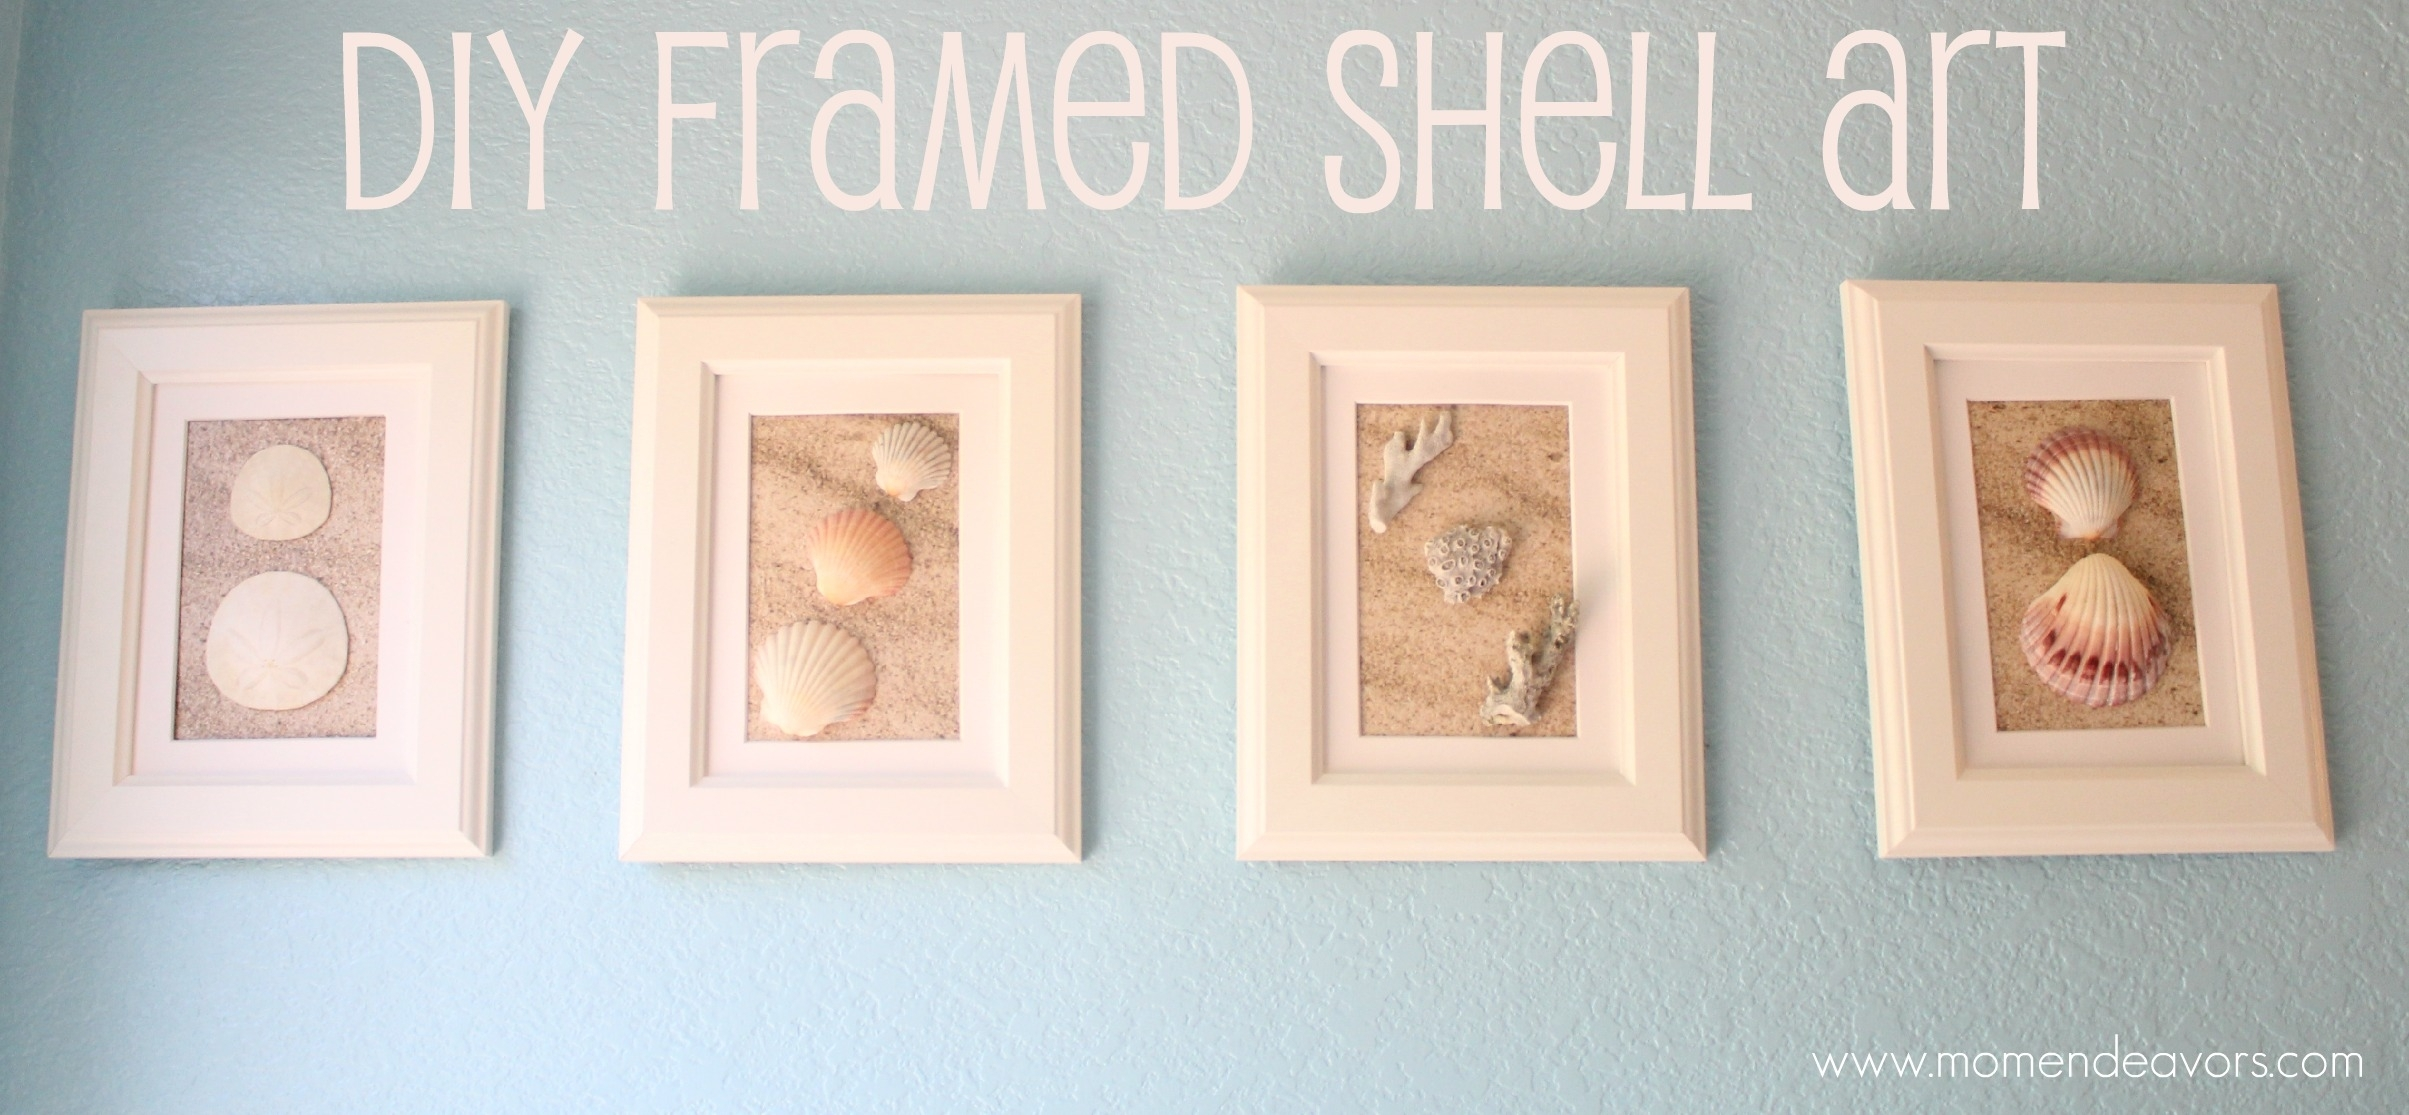 Diy Framed Shell Art Pertaining To Best And Newest Framed Art Prints For Bathroom (View 7 of 15)